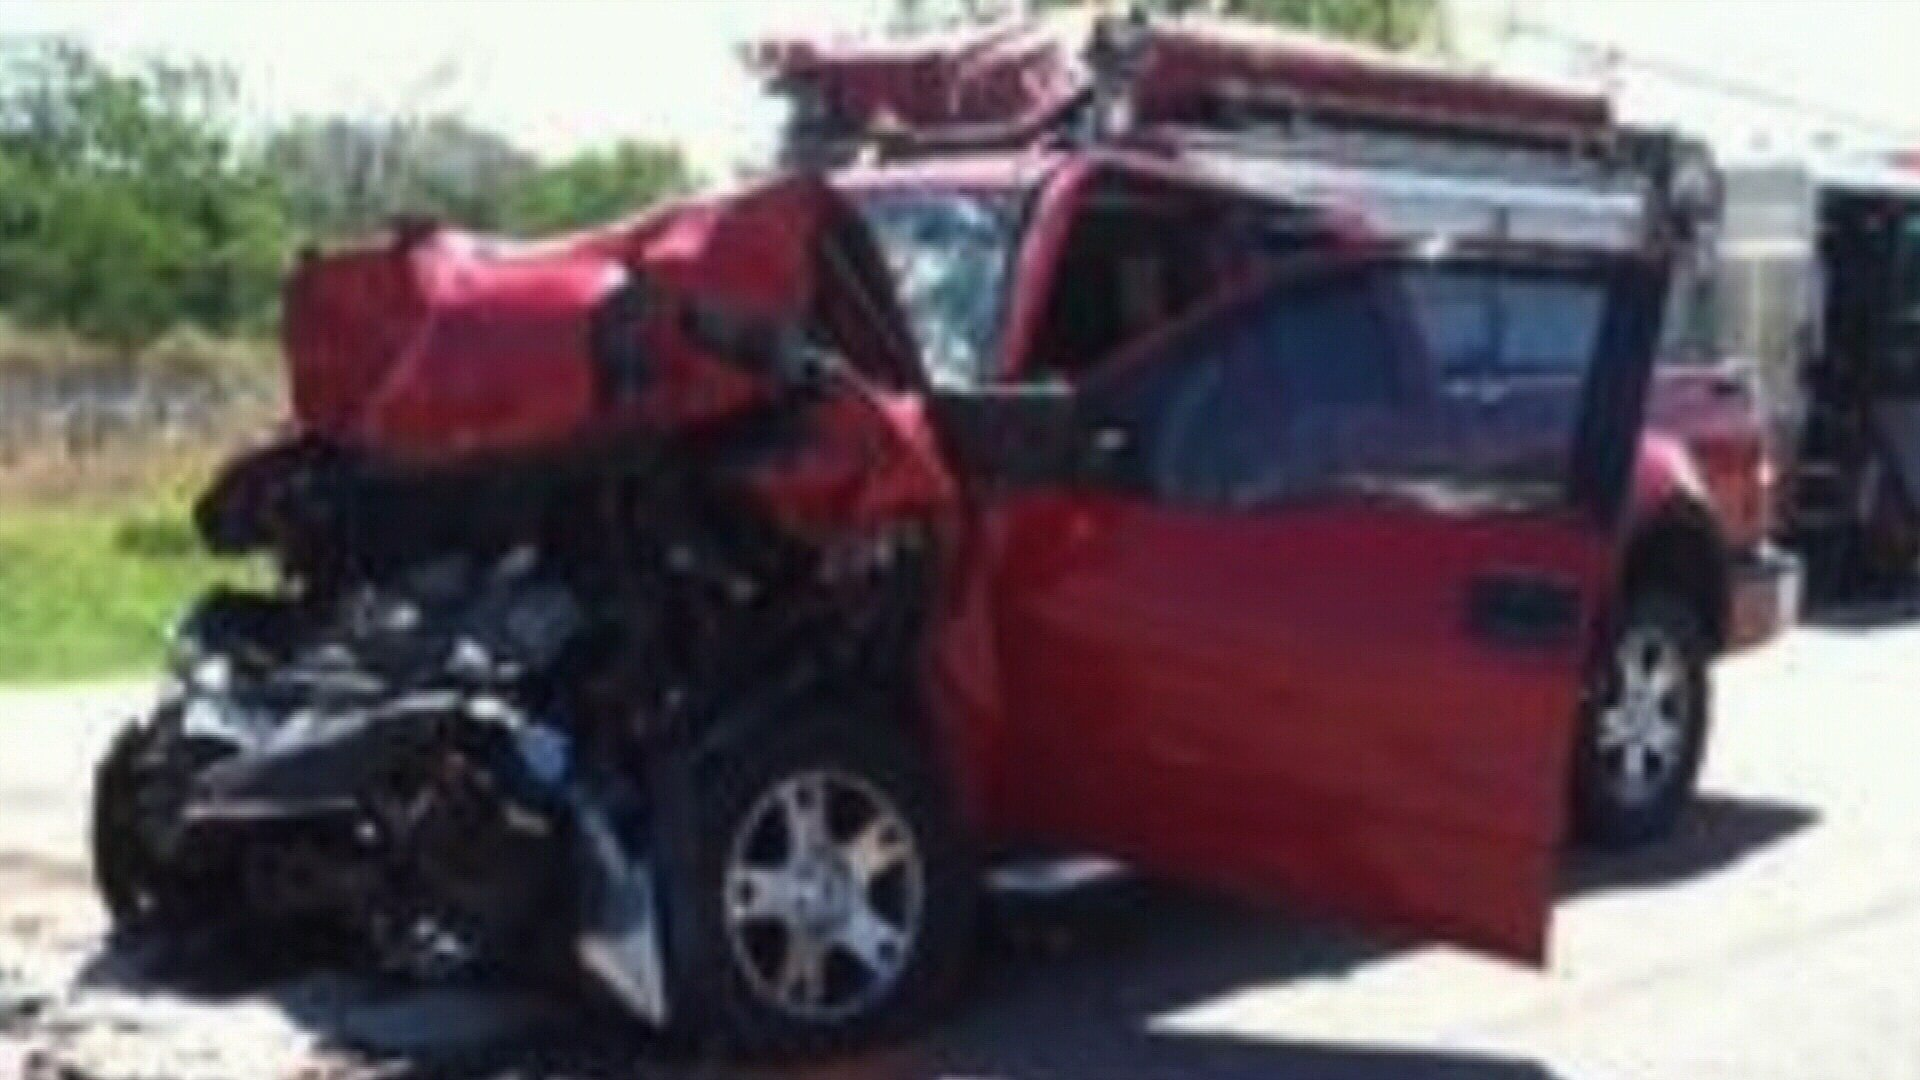 A local teenager lost his life while driving distracted.